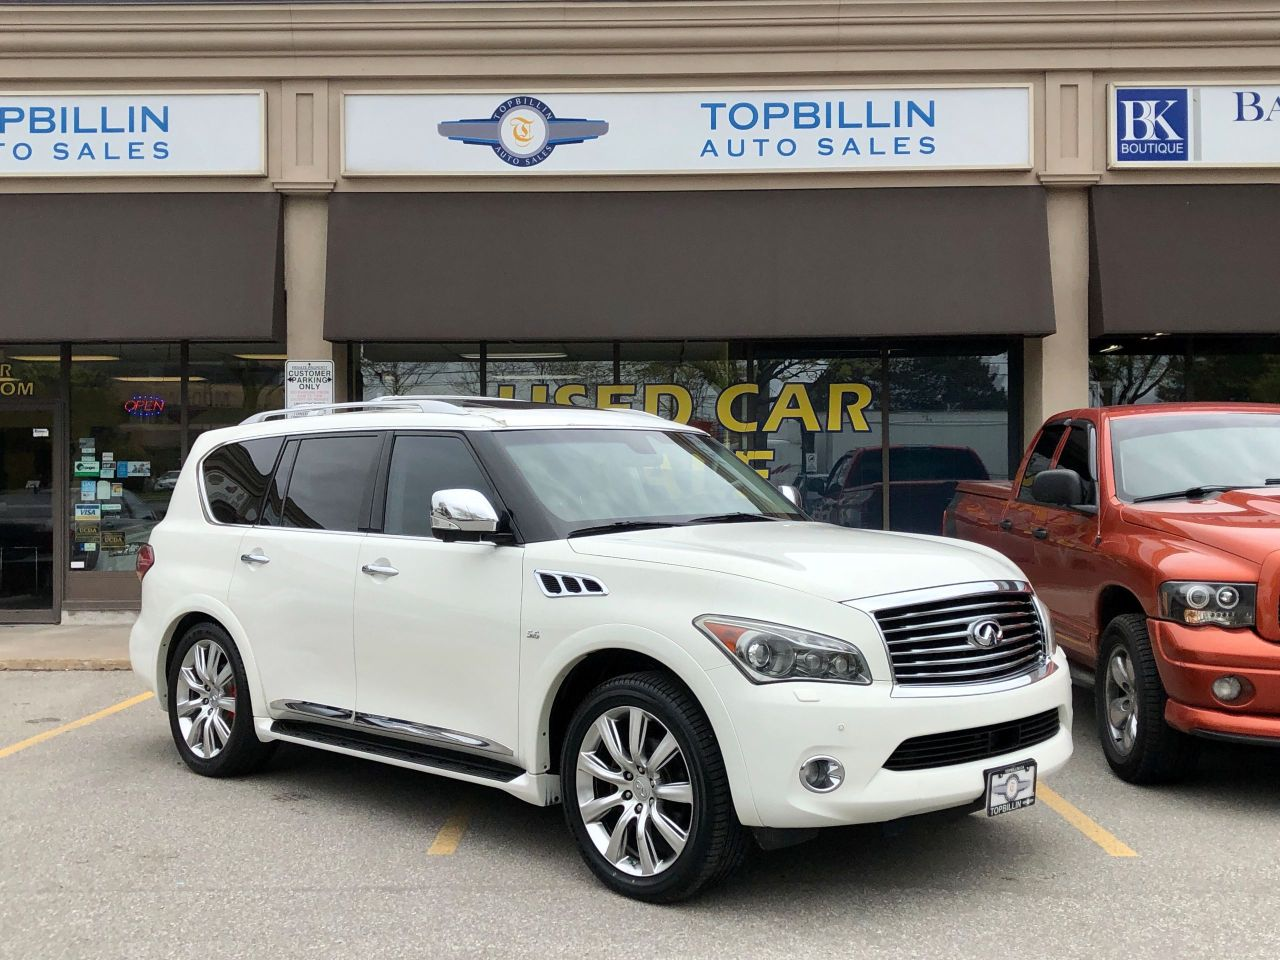 2011 Infiniti QX56 Fully loaded, Navi, DVD, Backup Cam...